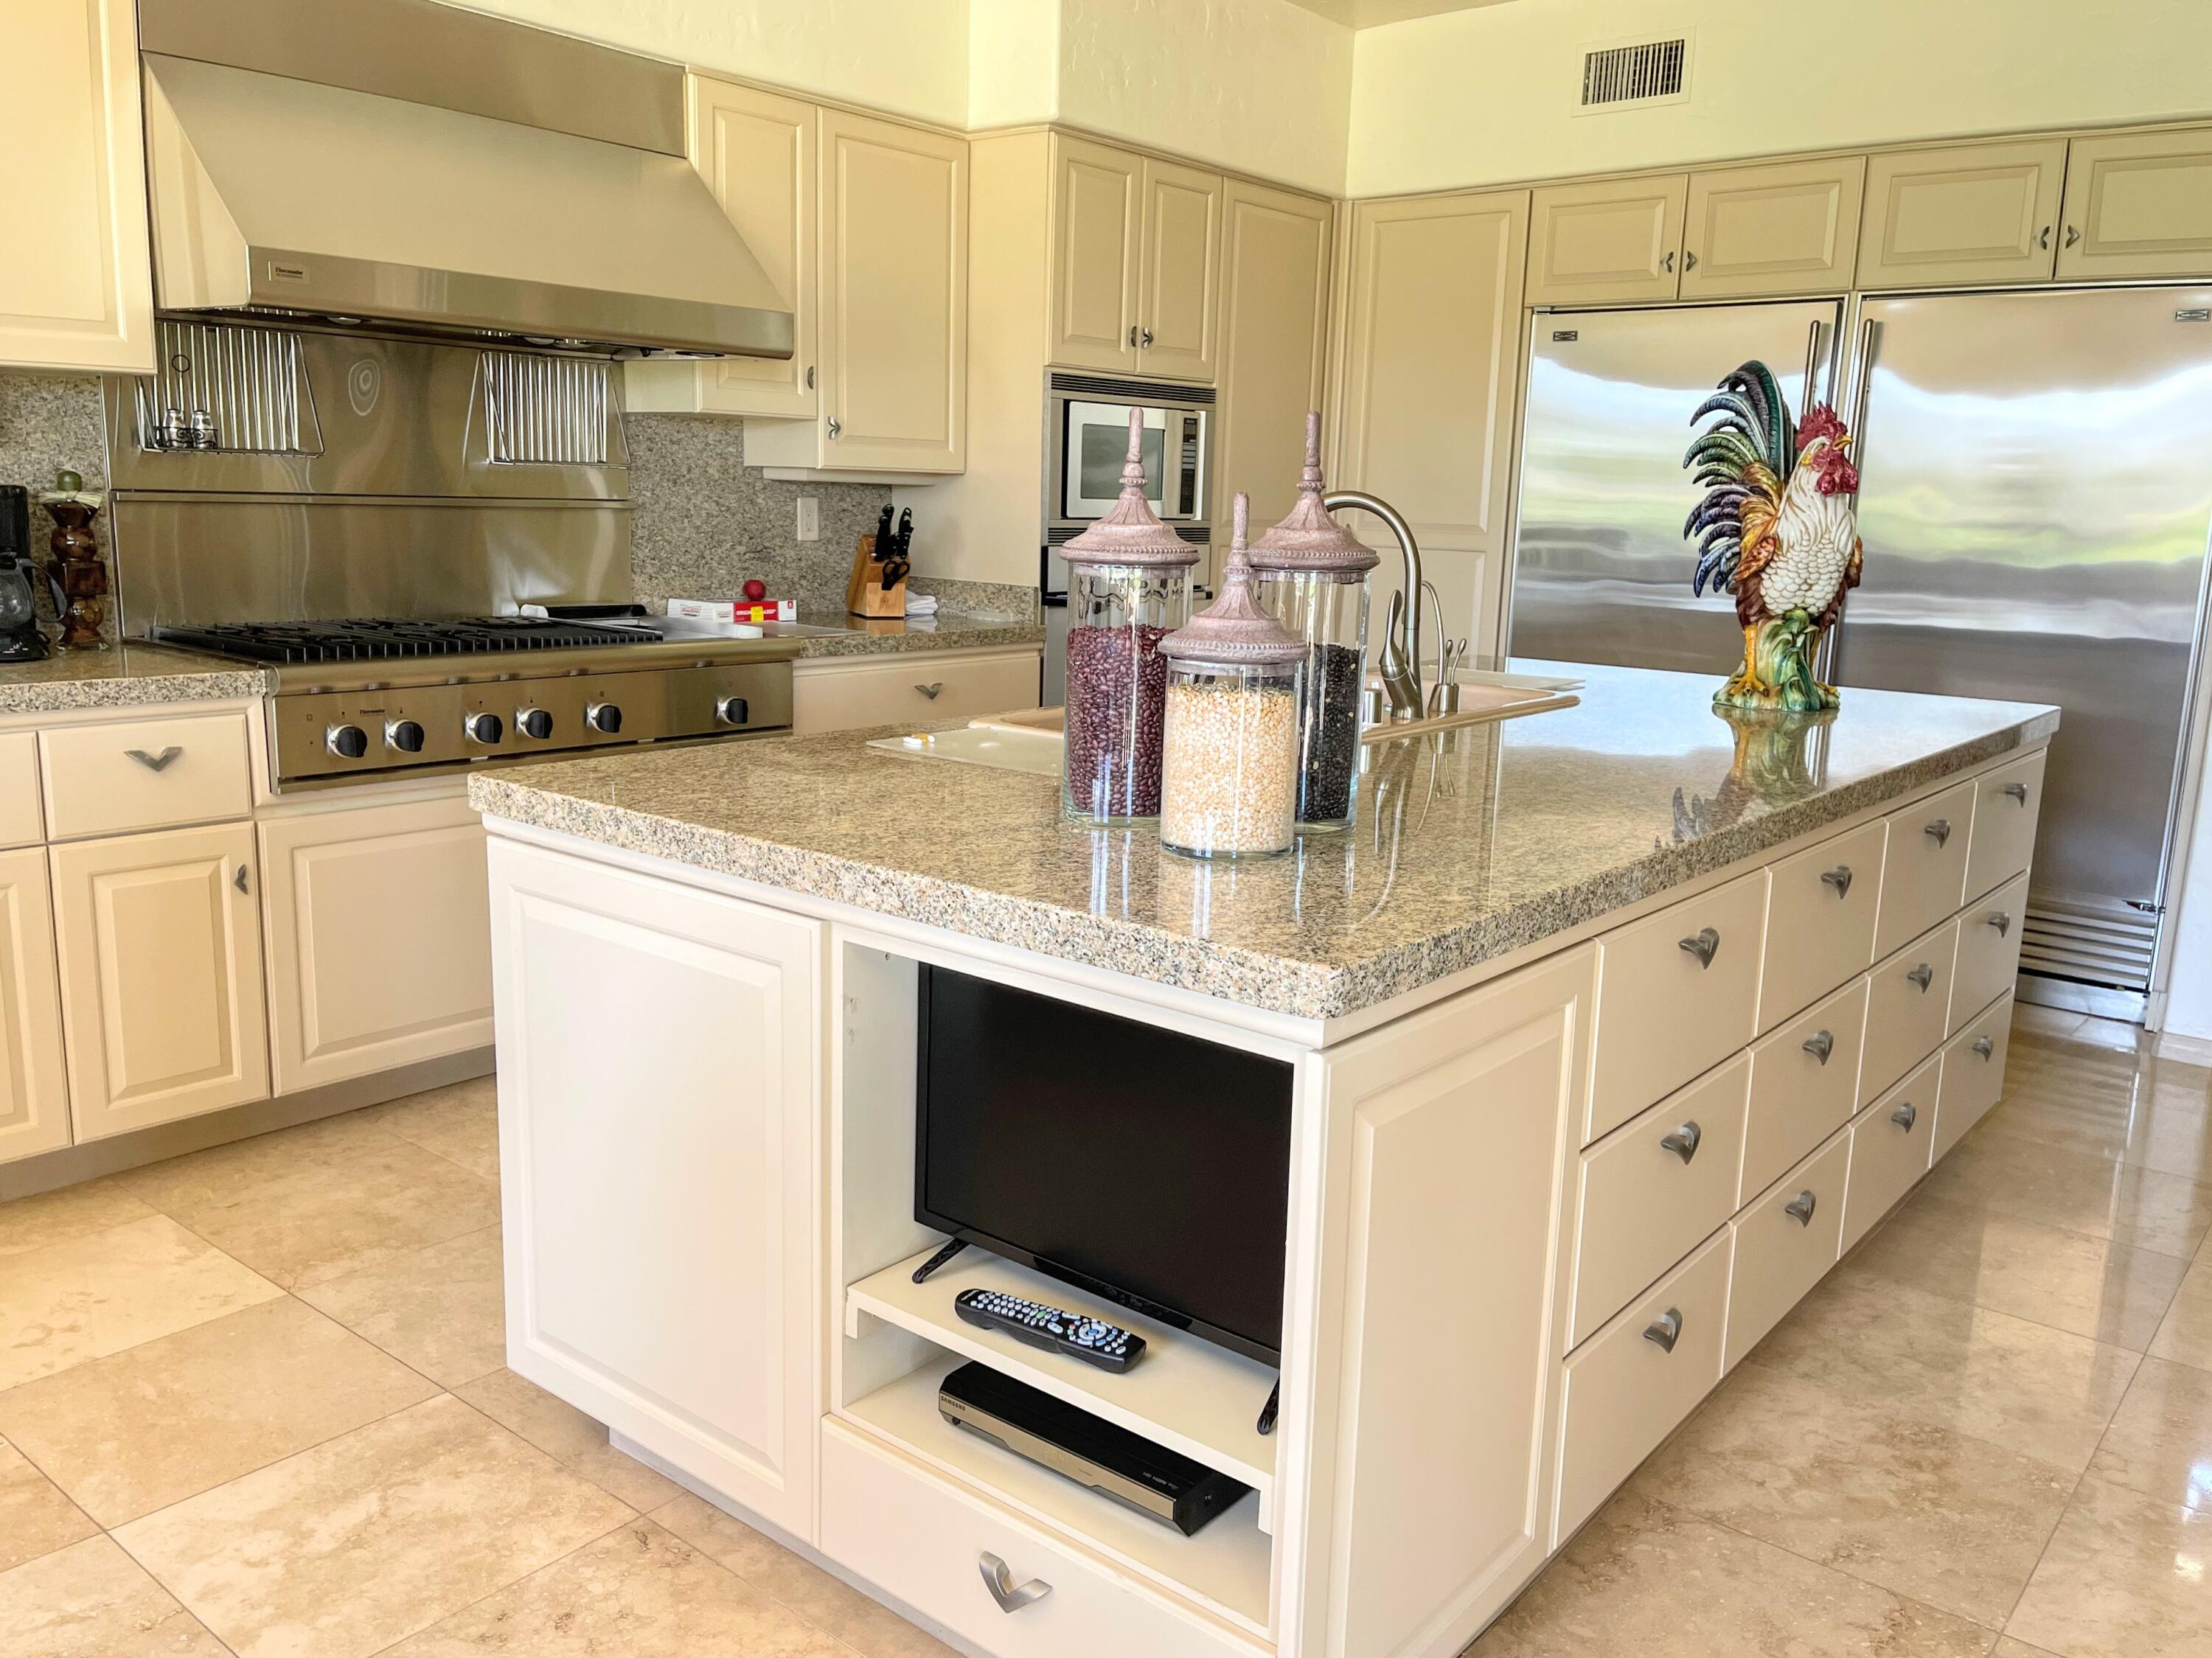 Exceptional offering at The Lakes Country Club.  This turnkey furnished home is one of a kind ! The Santa Fe model has been expanded to 3776 S.F. with 5 bedrooms and 5 1/2 bathrooms including two grand bedroom suites (each with a steam shower) and 3 other bedrooms each with an ensuite.  The kitchen is an entertainer's delight.  It is equipped with professional style appliances - two Subzero 36' refrigerators and one 36' Subzero freezer, a separate icemaker, and a 42' Thermador range-top with hood.  The oversized island is ideal for entertaining, family gatherings or for the chef in you to experiment with new dishes!  The home is equipped with the original 'smart home' technology -lutron.  From a command center, you are able to control all lighting, sound and window shades.  Current owners have enhanced the smart home features with wifi thermostats(newer HVAC system and water heater as well), ring doorbell and wifi garage door opener system.  Located on a premier lot with westerly mountain views and a private gate from the side yard to the neighboring community pool and spa.  The Lakes CC has undergone an extensive update including a 13,500 state of the art fitness center.  HOA Dues include all amenities except golf.